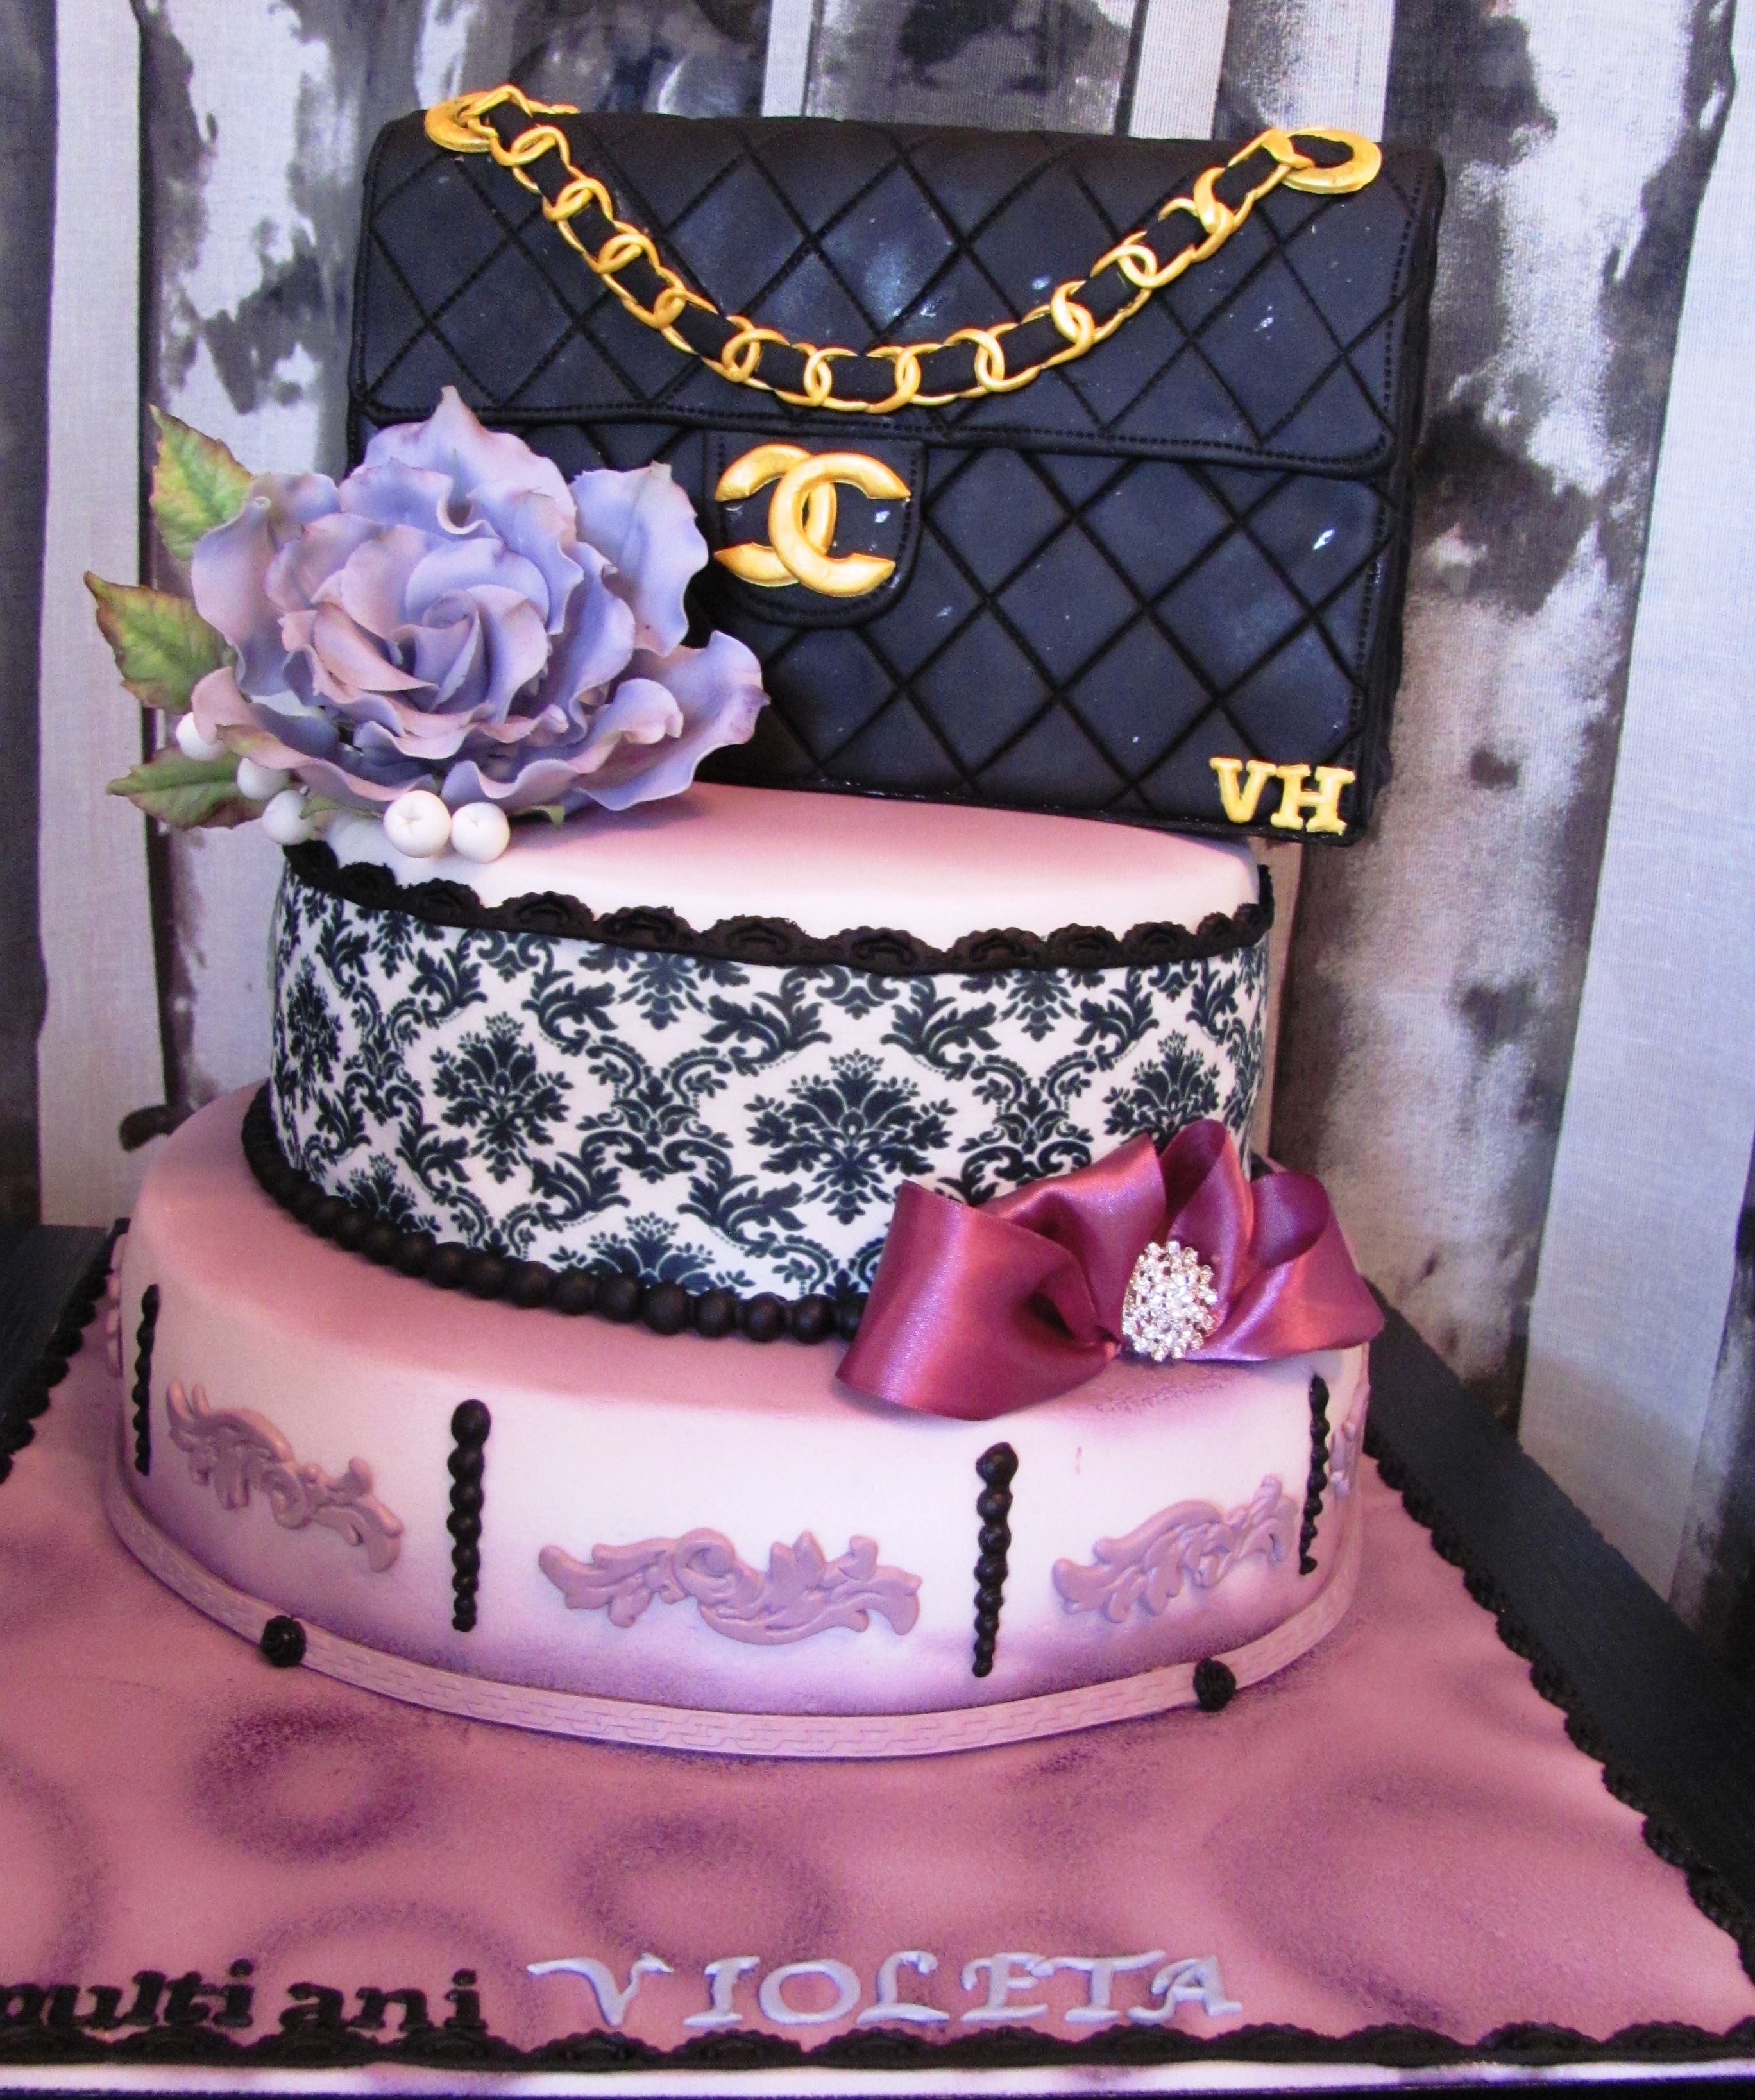 FASHION CAKE My Cakesmy Work Pinterest Fashion Cakes - Stylish birthday cakes